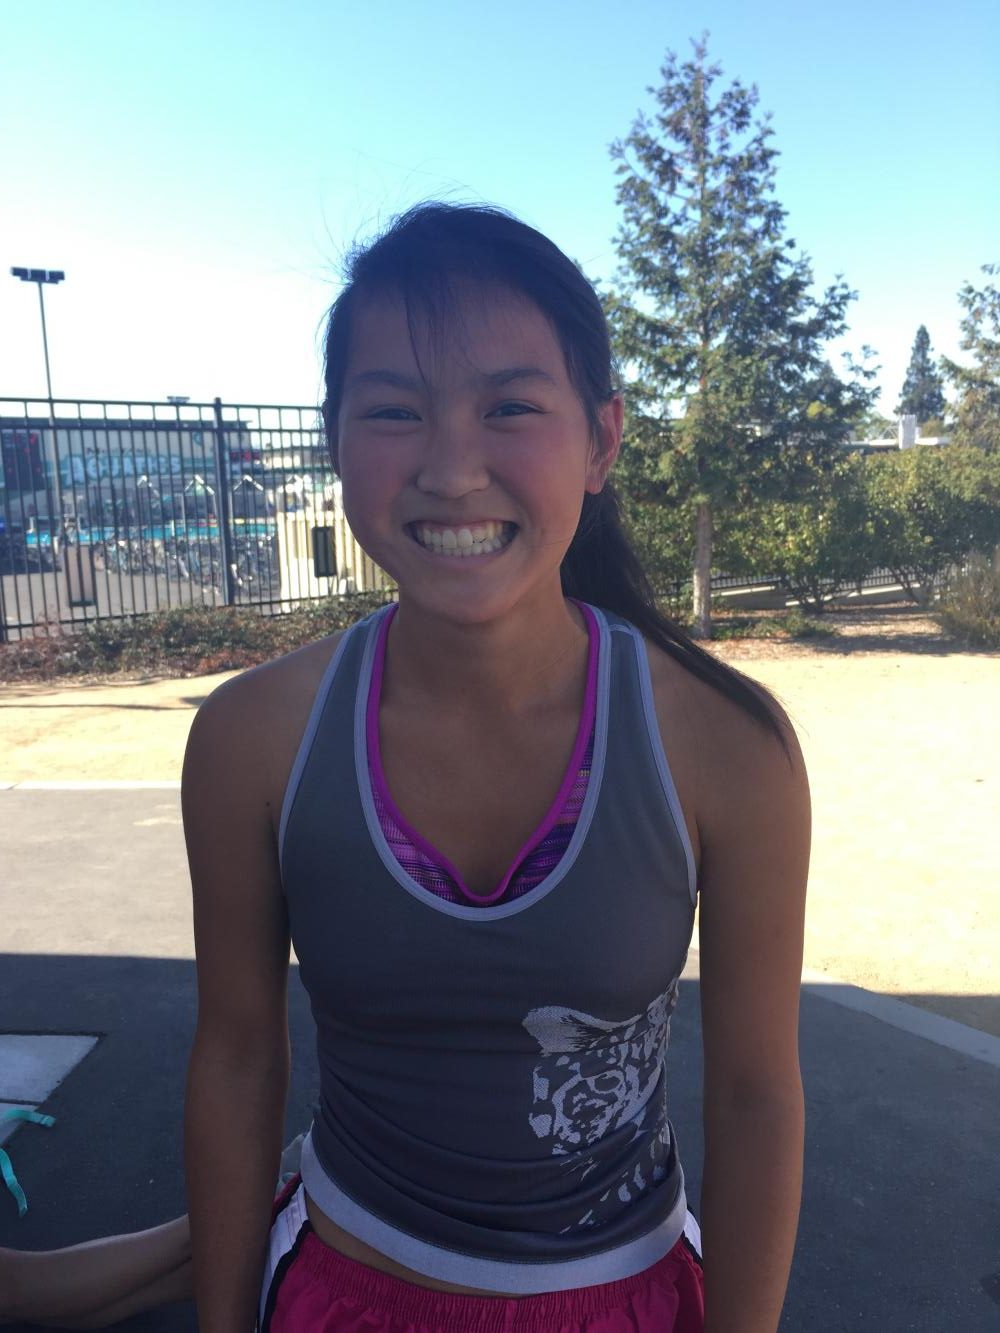 Trina+Chou%2C+a+junior%2C+is+an+aspiring+lacrosse+player+who+plays+year-round+--+three+of+the+four+seasons+she+plays+with+her+travel+team.+Her+current+aspirations+include+college+lacrosse%2C+and+Chou+said+that+the+recruitment+process+involves+going+to+camps+and+tournaments%2C+all+whilst+%E2%80%9Ctrying+to+get+coaches+interested+in+you.%E2%80%9D+%0A%09Chou+is+actively+doing+all+abovementioned+things.+Her+biggest+accomplishment+thus+far+would+be+remaining+undefeated+with+her+travel+team%2C+an+accomplishment+she+is+%E2%80%9Cpretty+proud%E2%80%9D+of.+Although+she+has+her+sights+on+college+lacrosse%2C+Chou+comments+that+if+possible%2C+she+would+like+to+continue+playing+beyond+college.+According+to+Chou%2C+there+is+a+small+women%E2%80%99s+league+outside+of+college.%0A%09Lacrosse+is+not+a+sport+HHS+offers%2C+and+while+this+has+been+a+challenge+for+Chou+in+the+recruitment+process%2C+she+states+that+%E2%80%9Cluckily%2C+high+school+does+not+have+much+of+an+impact.%E2%80%9D+She+cites+location+%E2%80%93++playing+an+east+coast+sport+while+living+in+the+west+coast+--+as+a+greater+disadvantage%2C+but+said+that+she+has+%E2%80%9Clearned+to+work+past+%5Bit%5D%E2%80%9D+and+will+continue+working+hard.+%0A